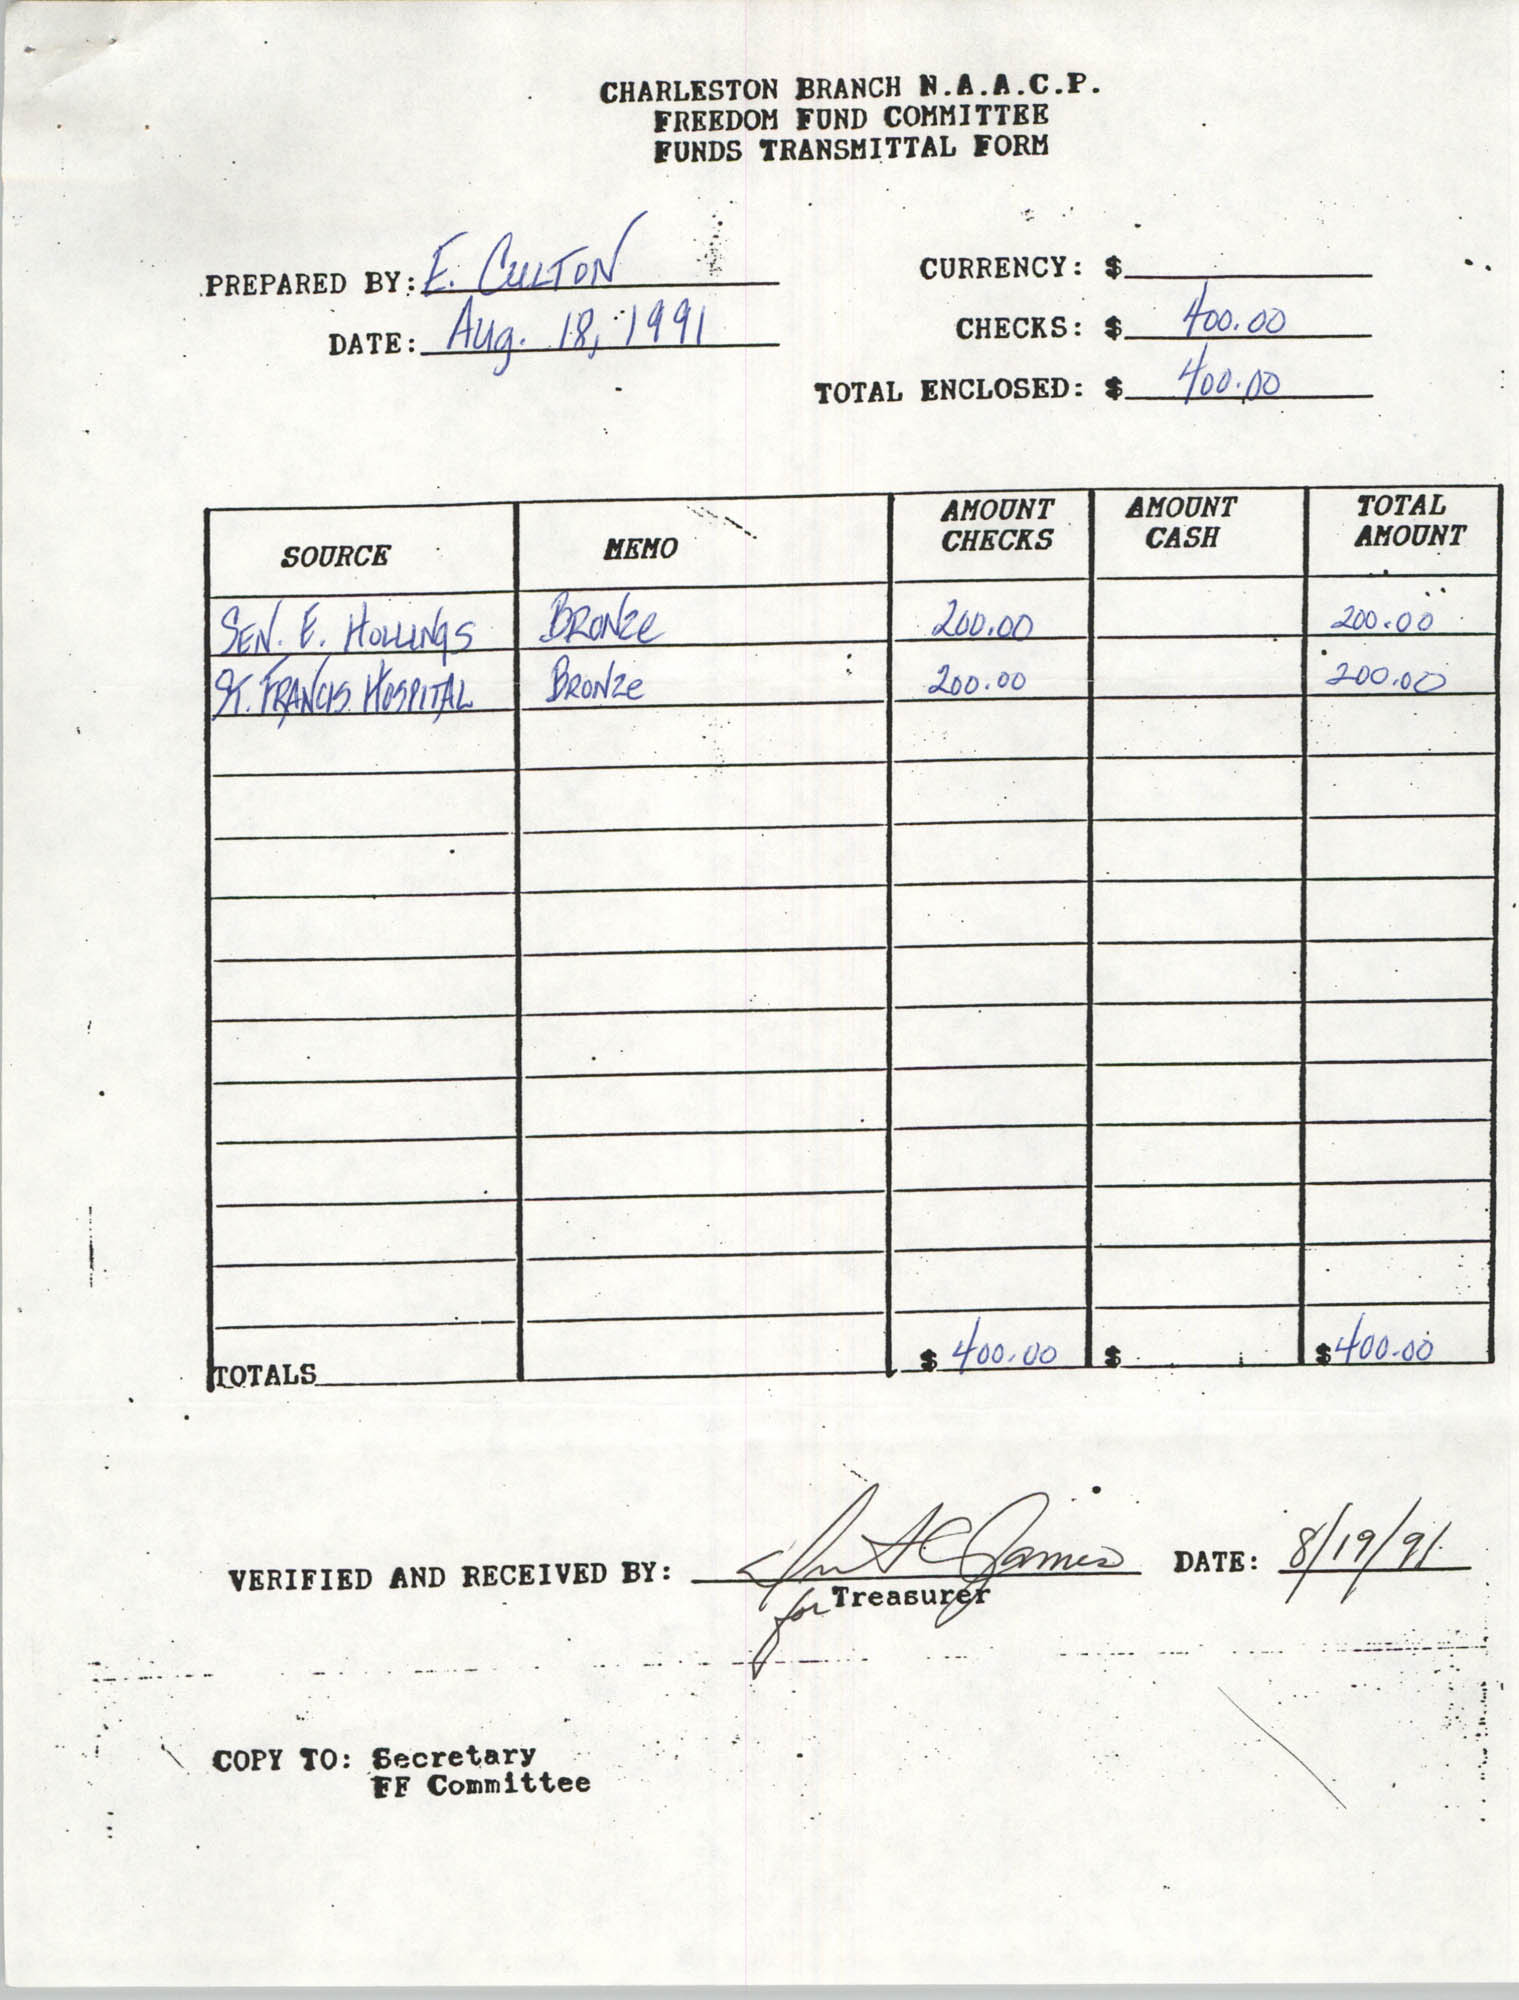 Charleston Branch of the NAACP Funds Transmittal Forms, August 1991, Page 19